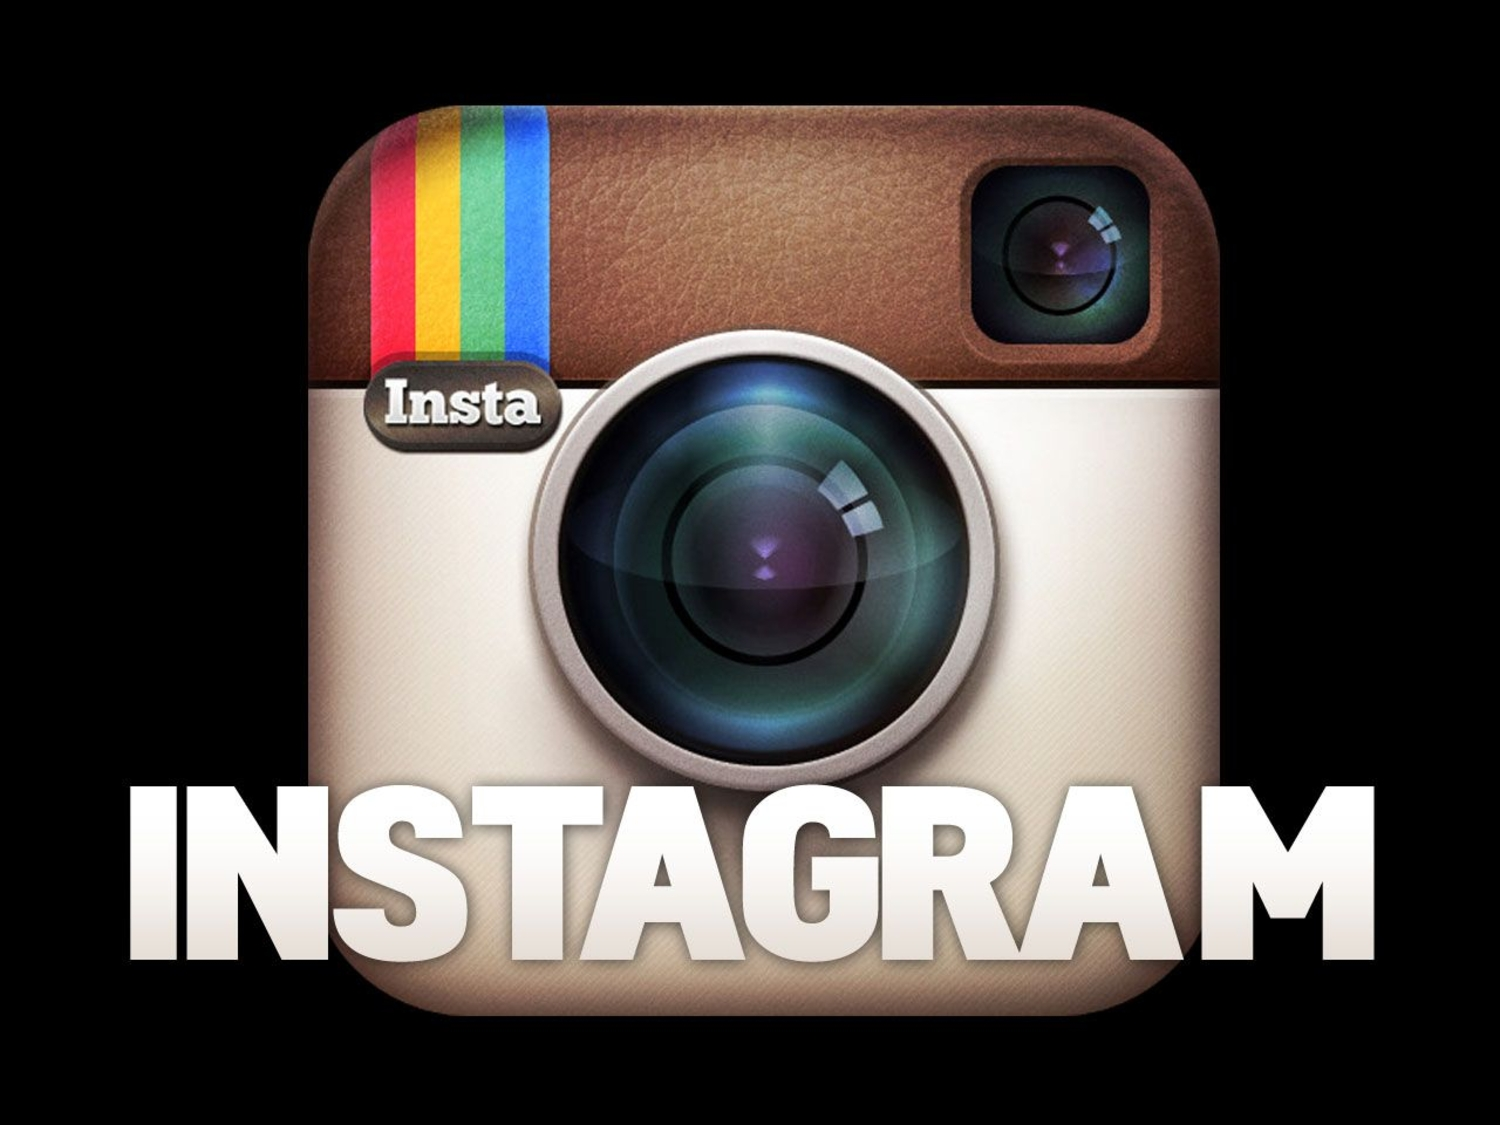 Instagram: Welcome To Full HD